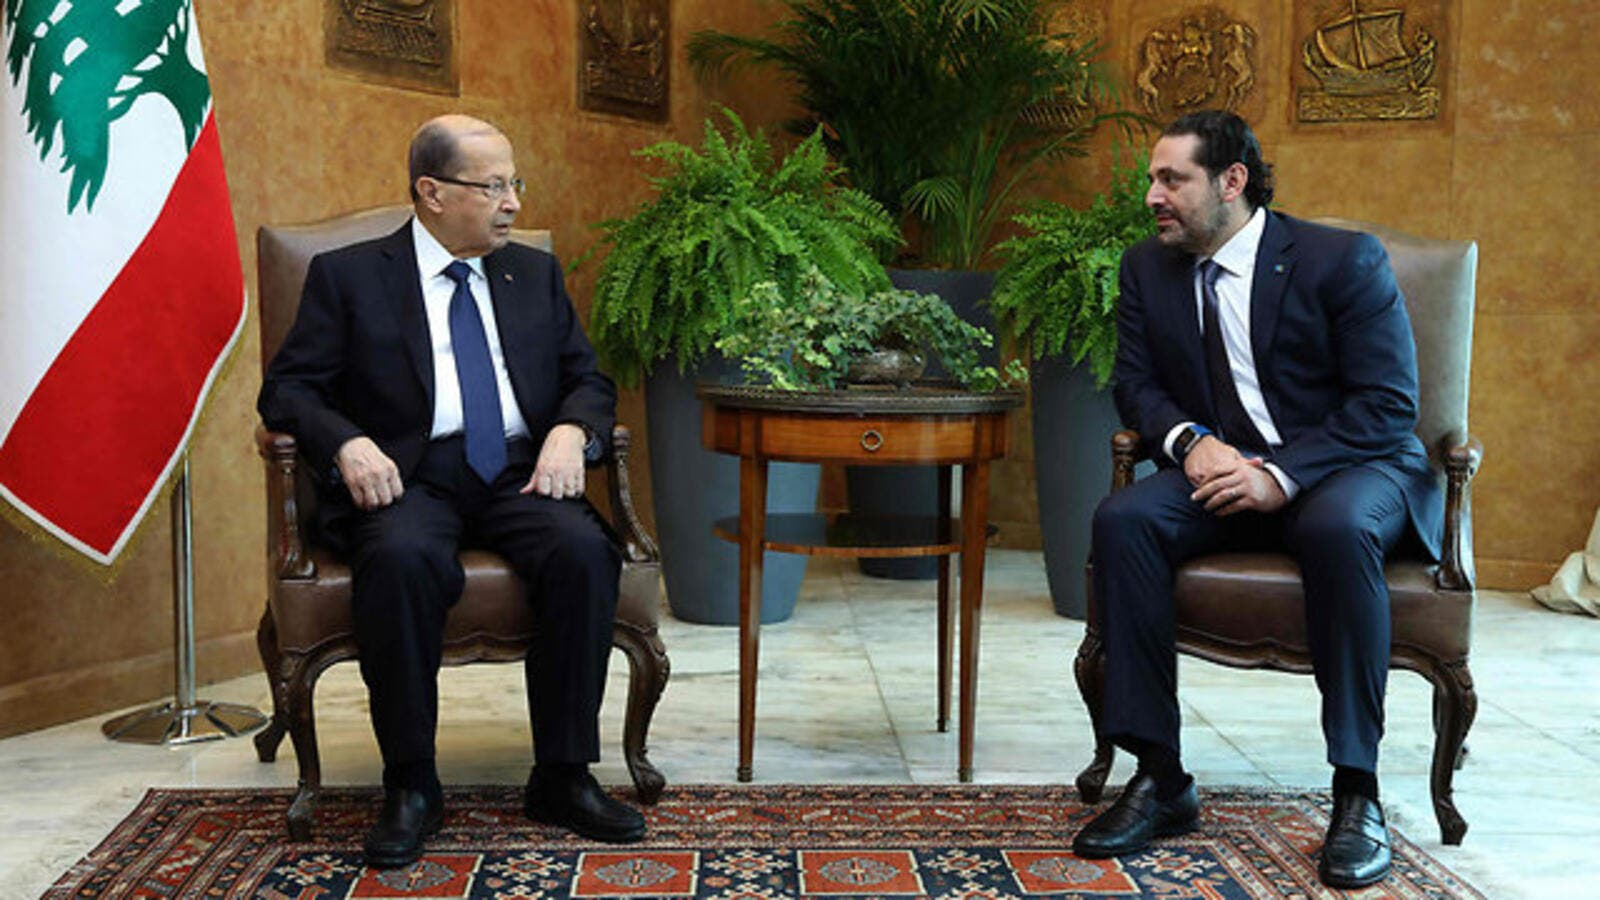 Lebanon President Michel Aoun (L) with Saad al-Hariri. (AFP/ File Photo)